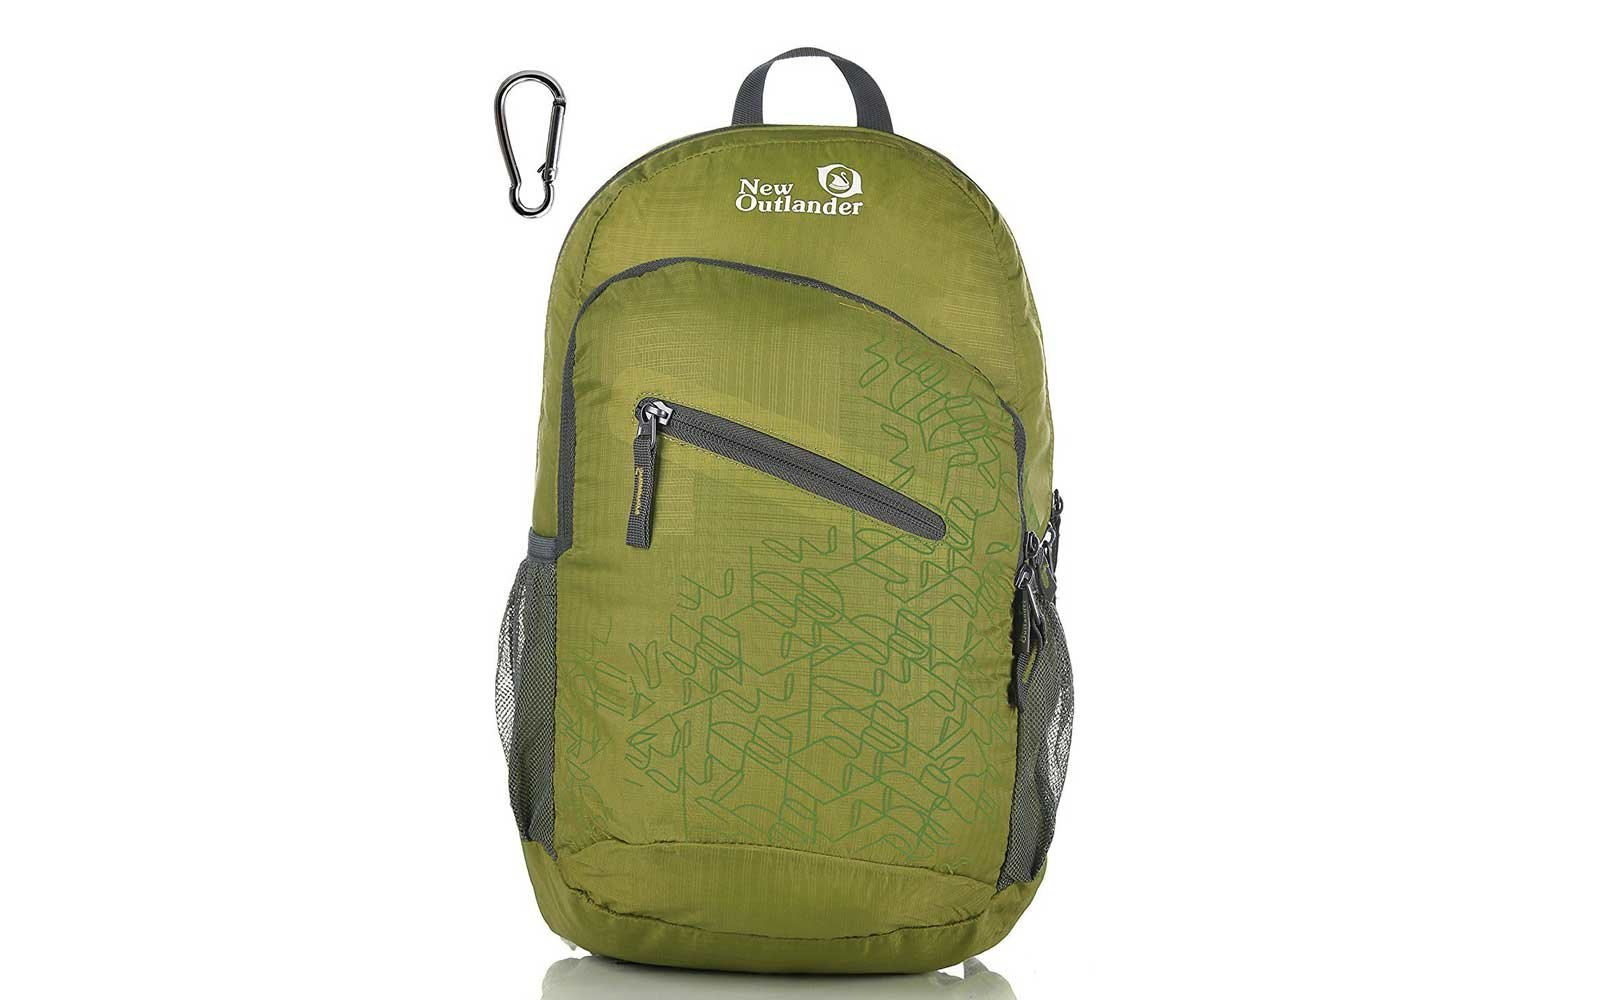 34632aab82 The Most Popular Backpacks on Amazon Right Now